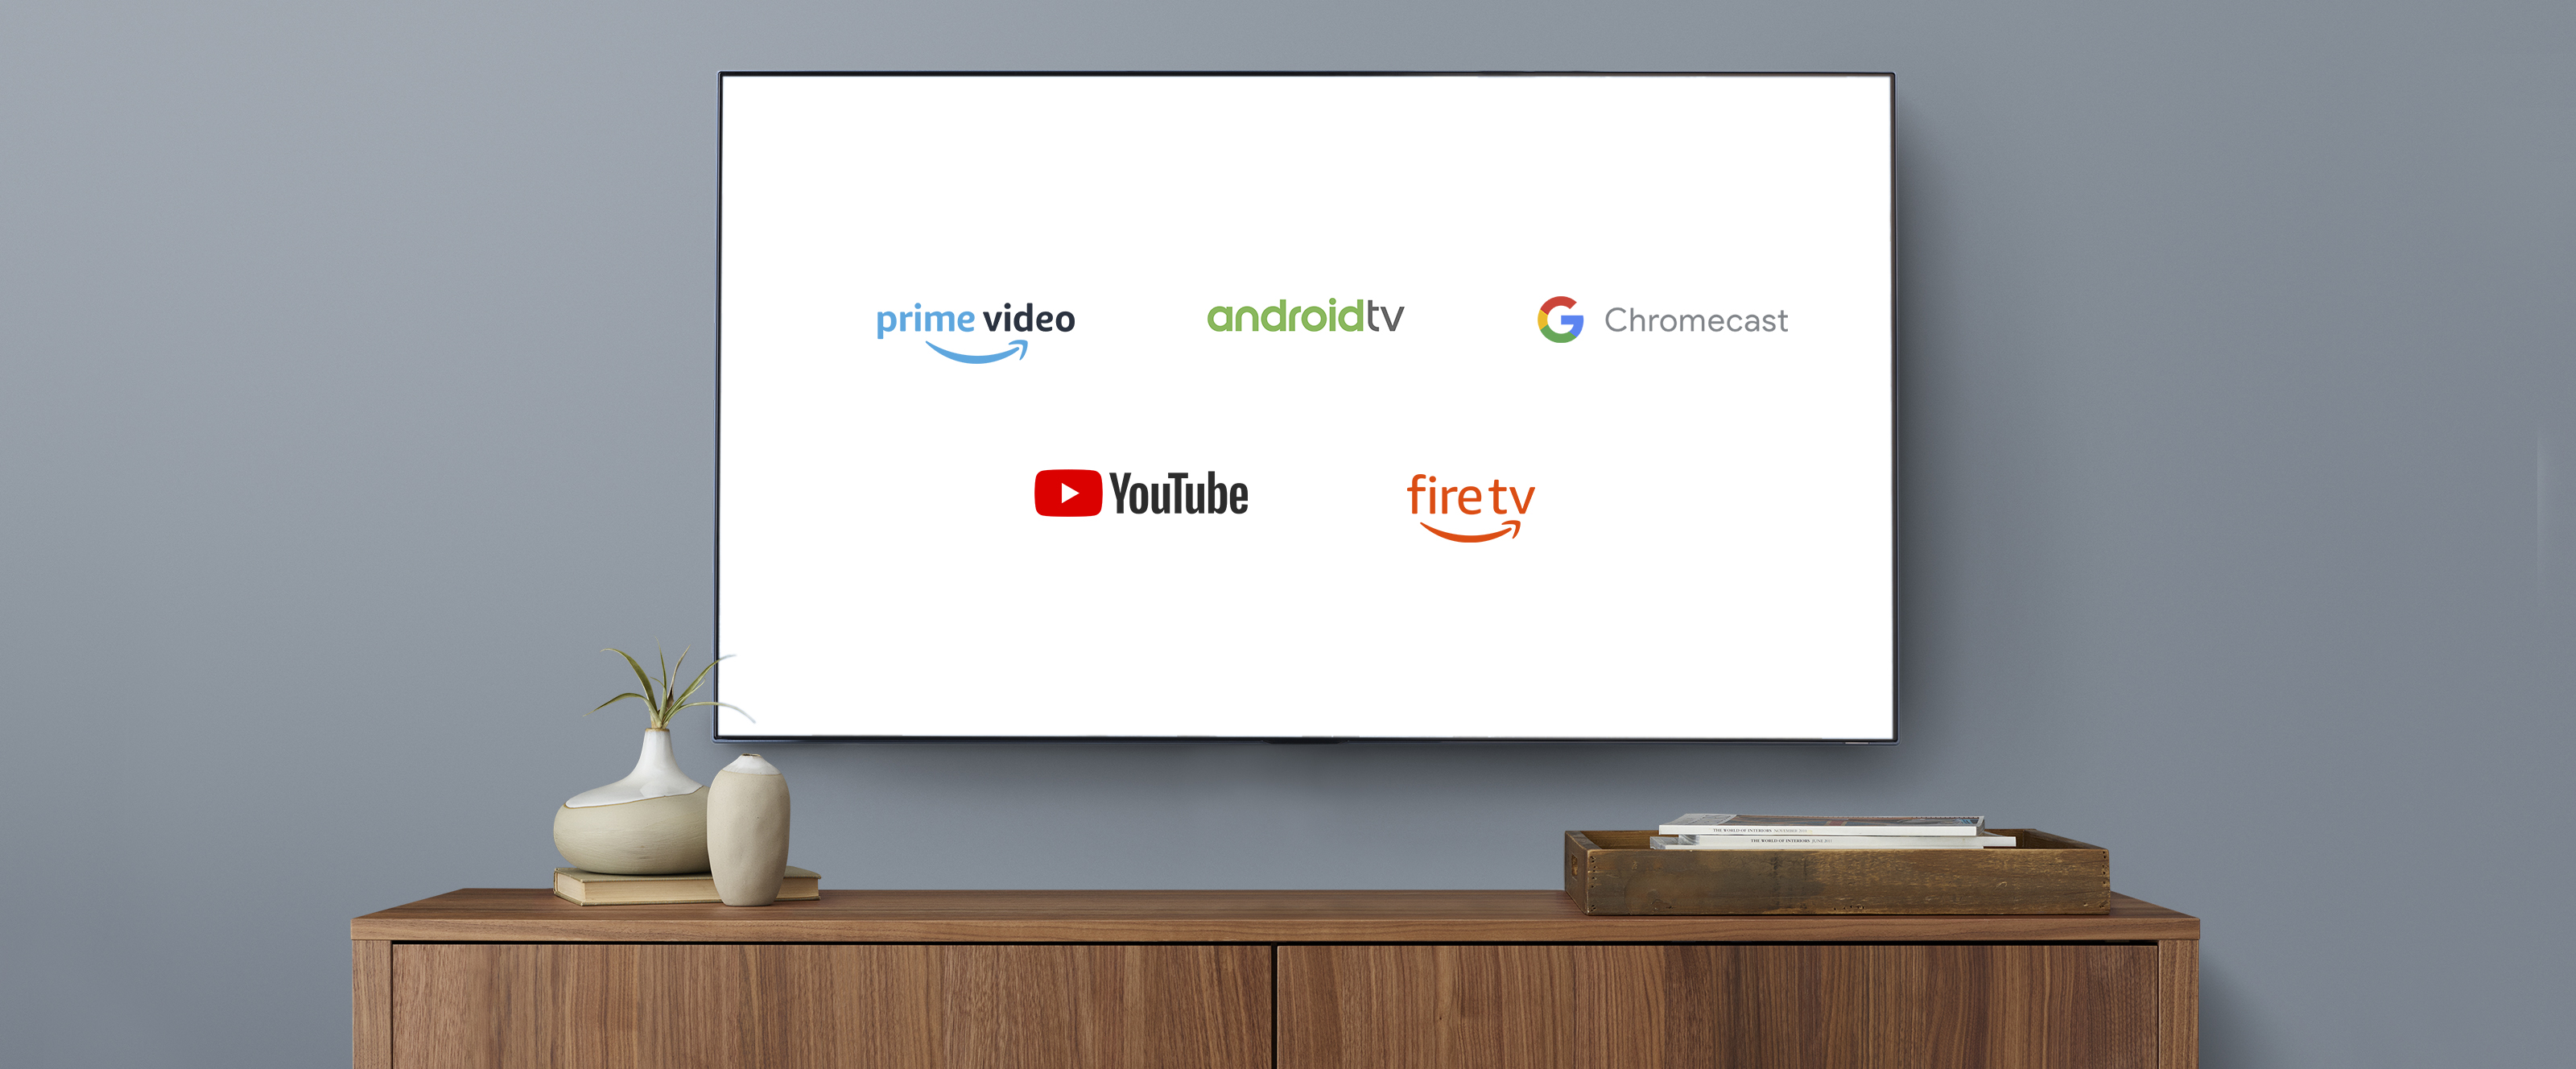 Prime Video is on Chromecast and Android TV, plus YouTube on